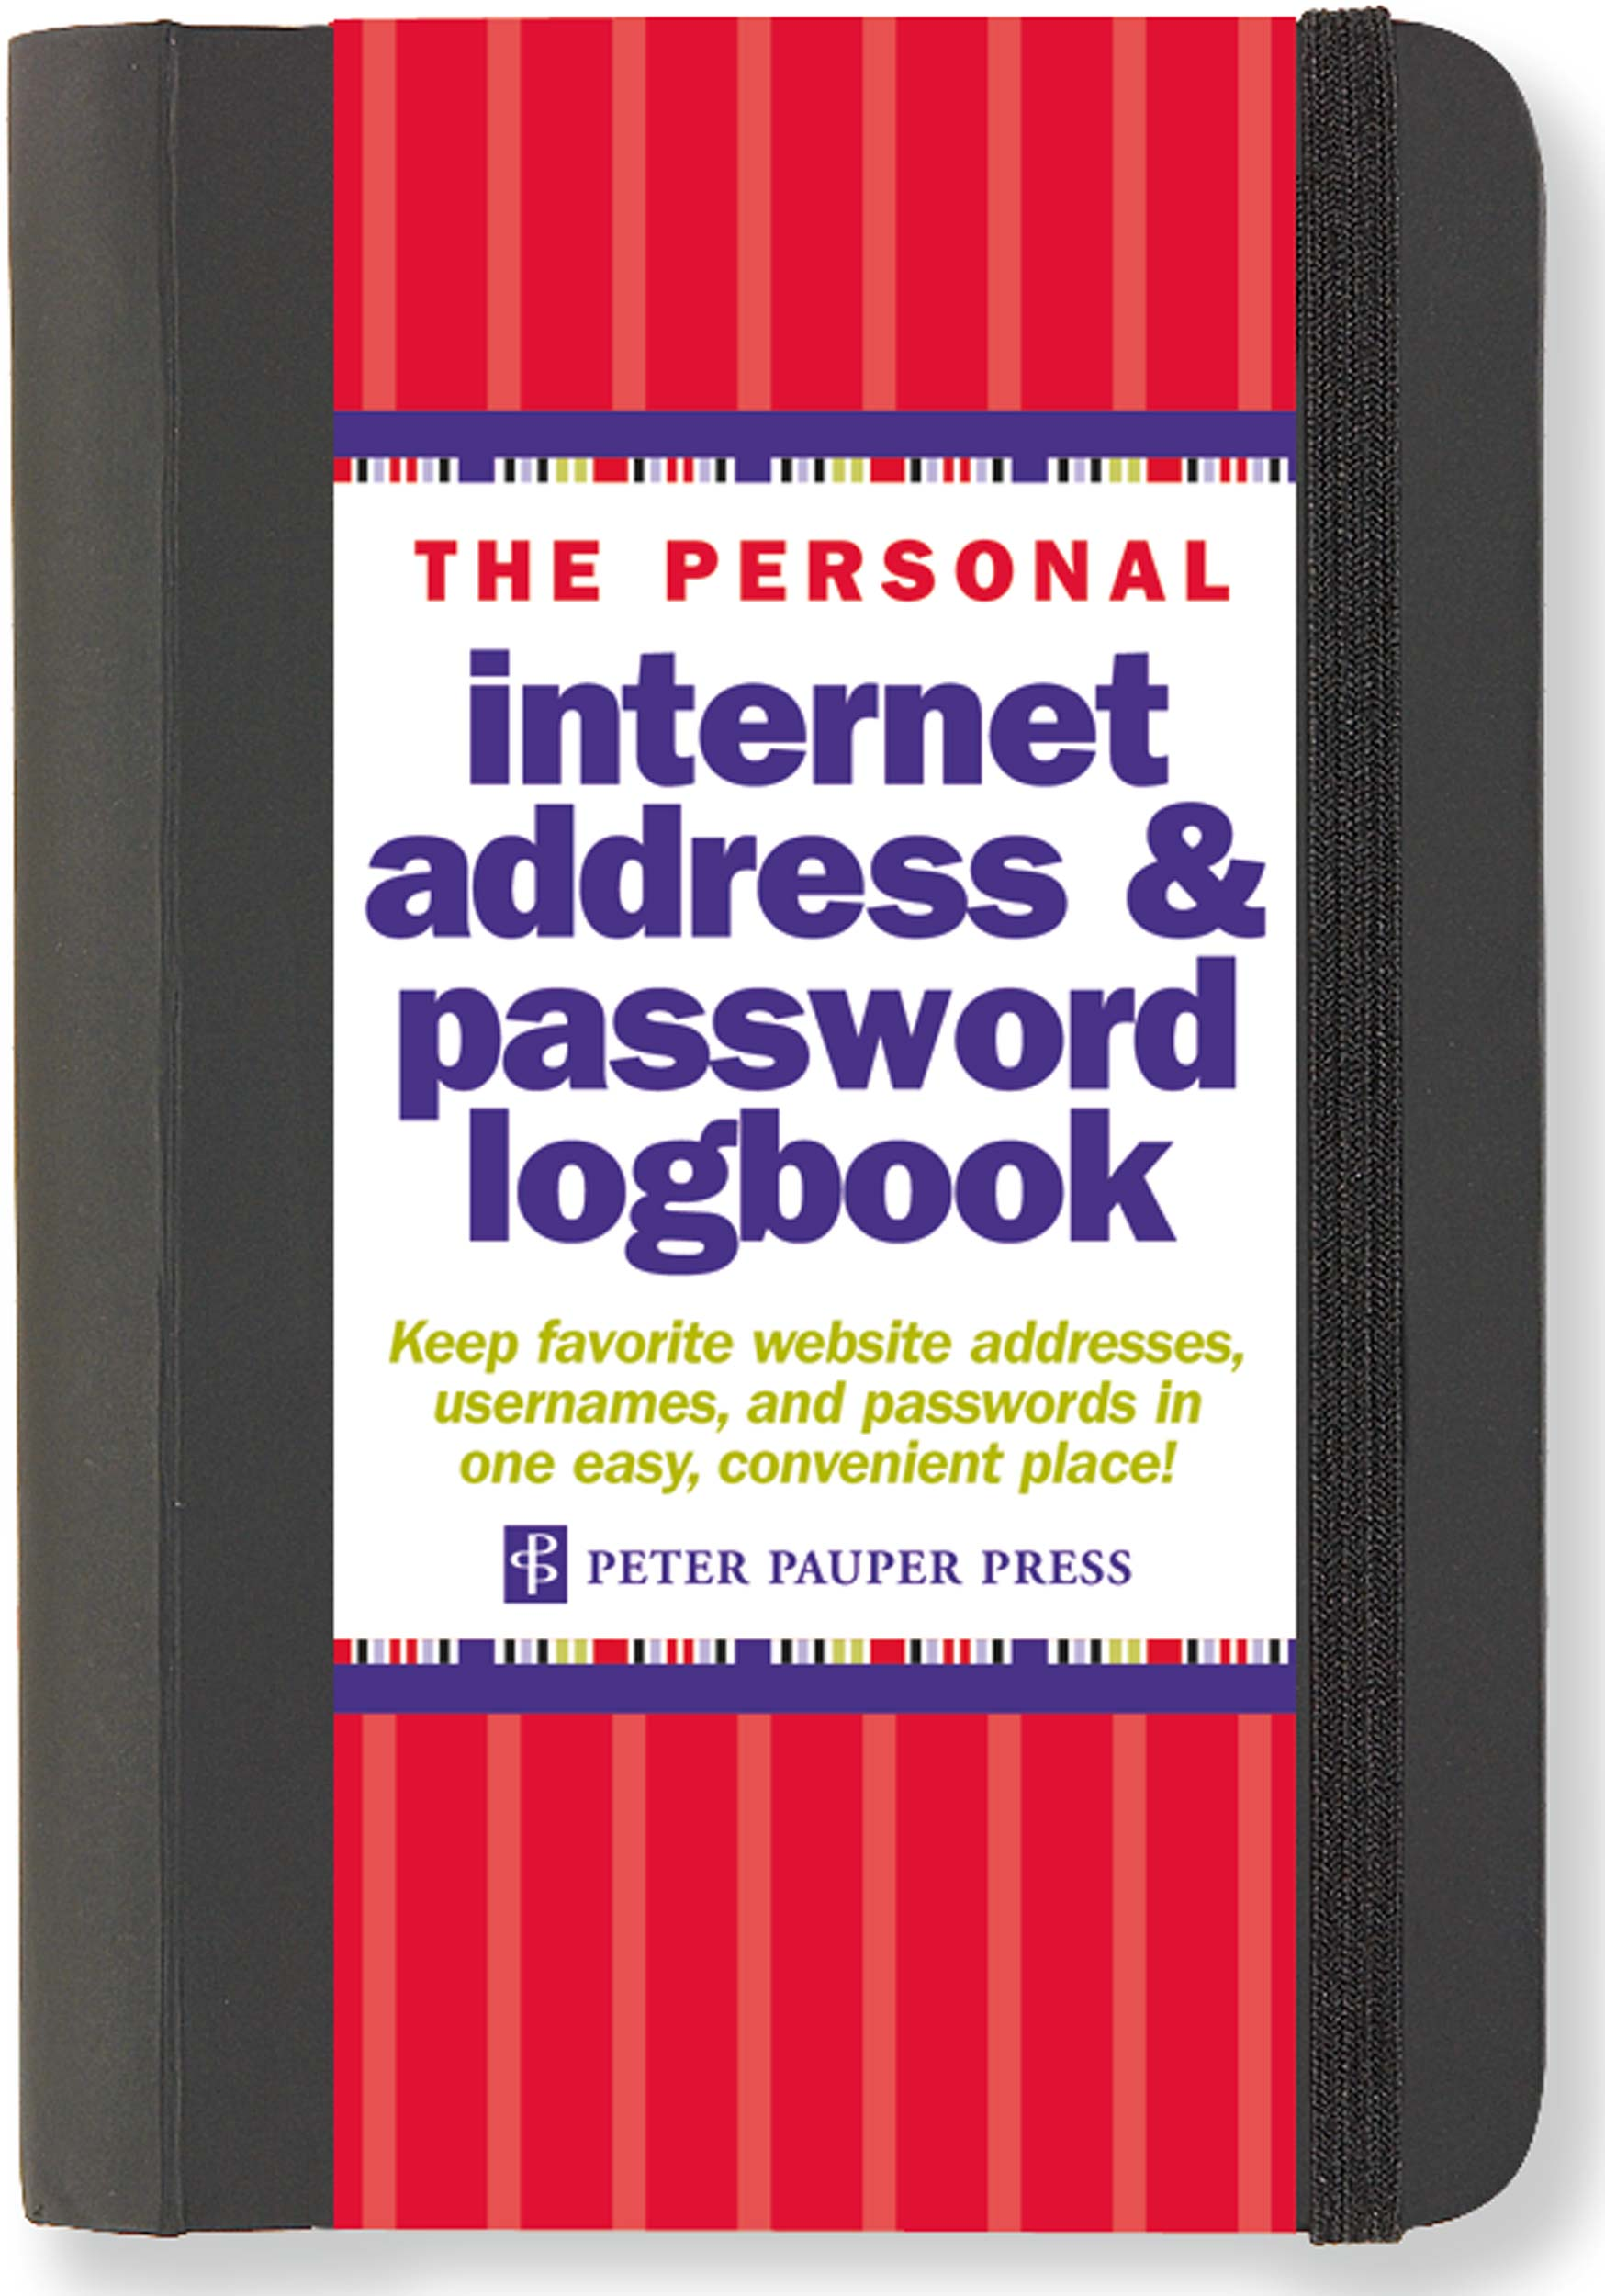 The Personal Internet Address & Log Book